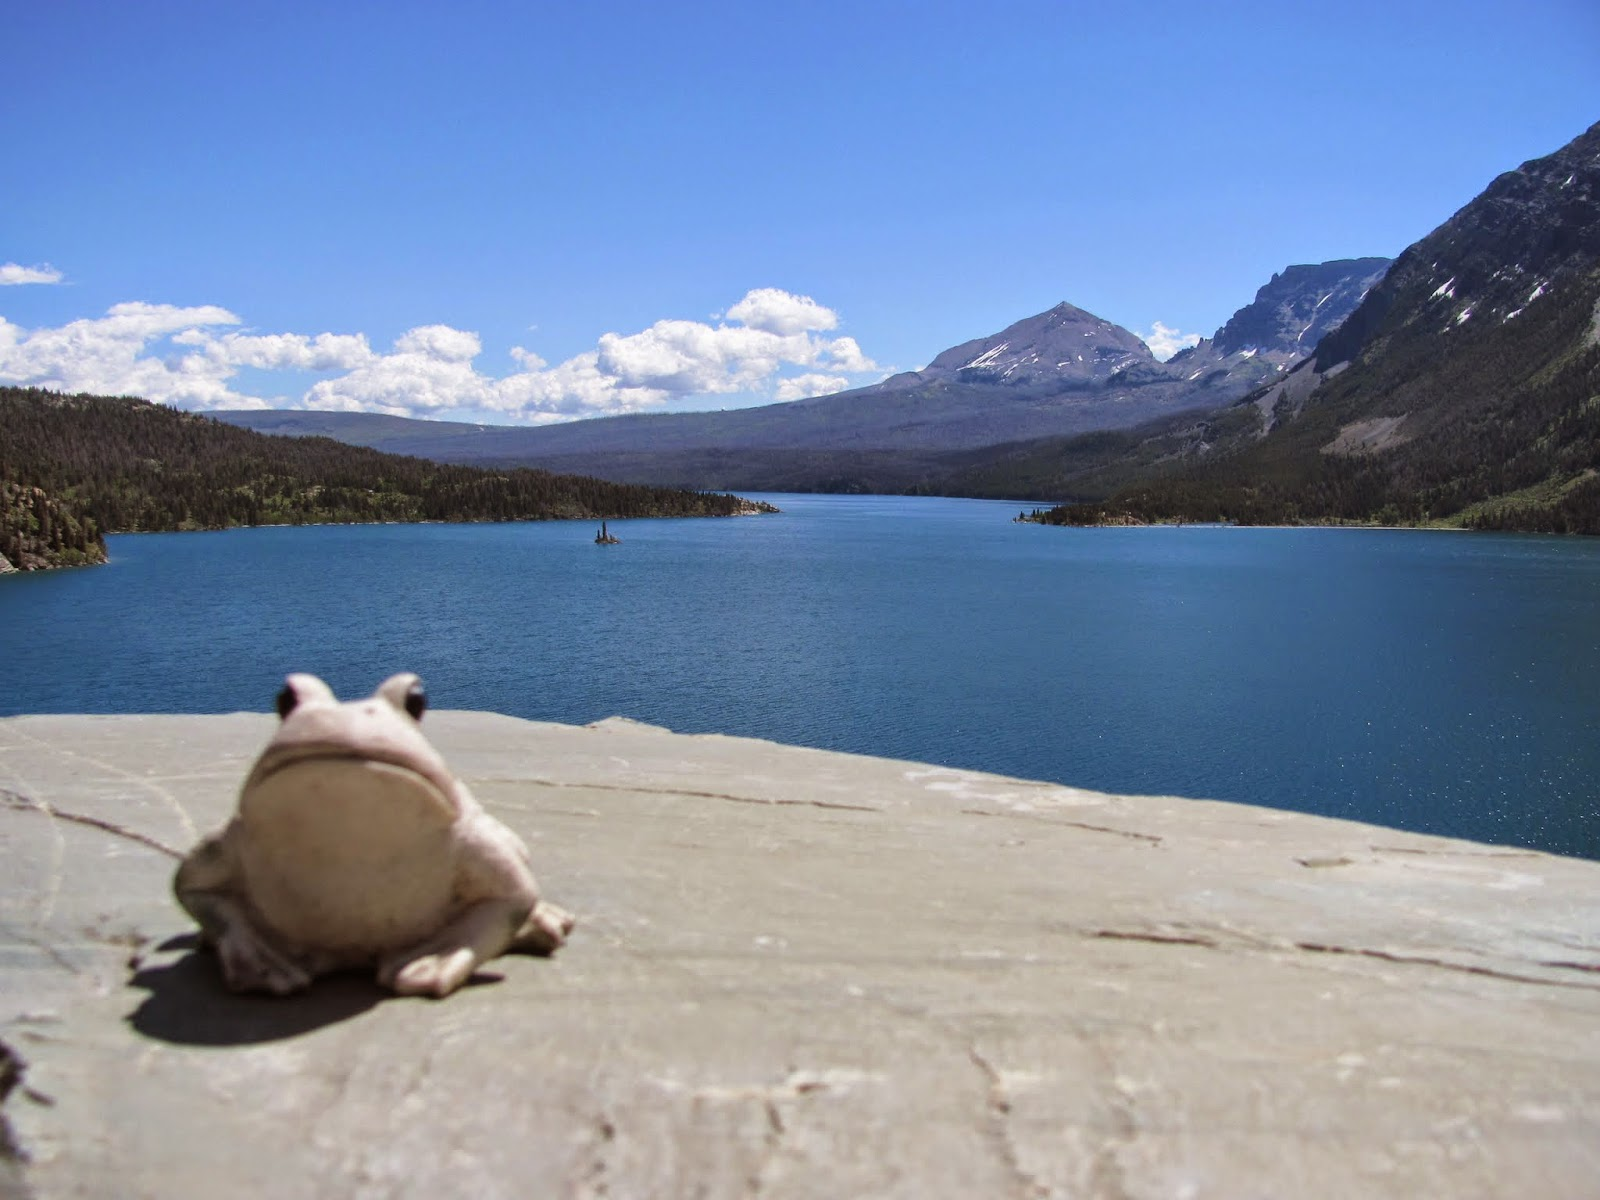 Frog poses on a rock near St. Mary Lake at Glacier National Park in Montana